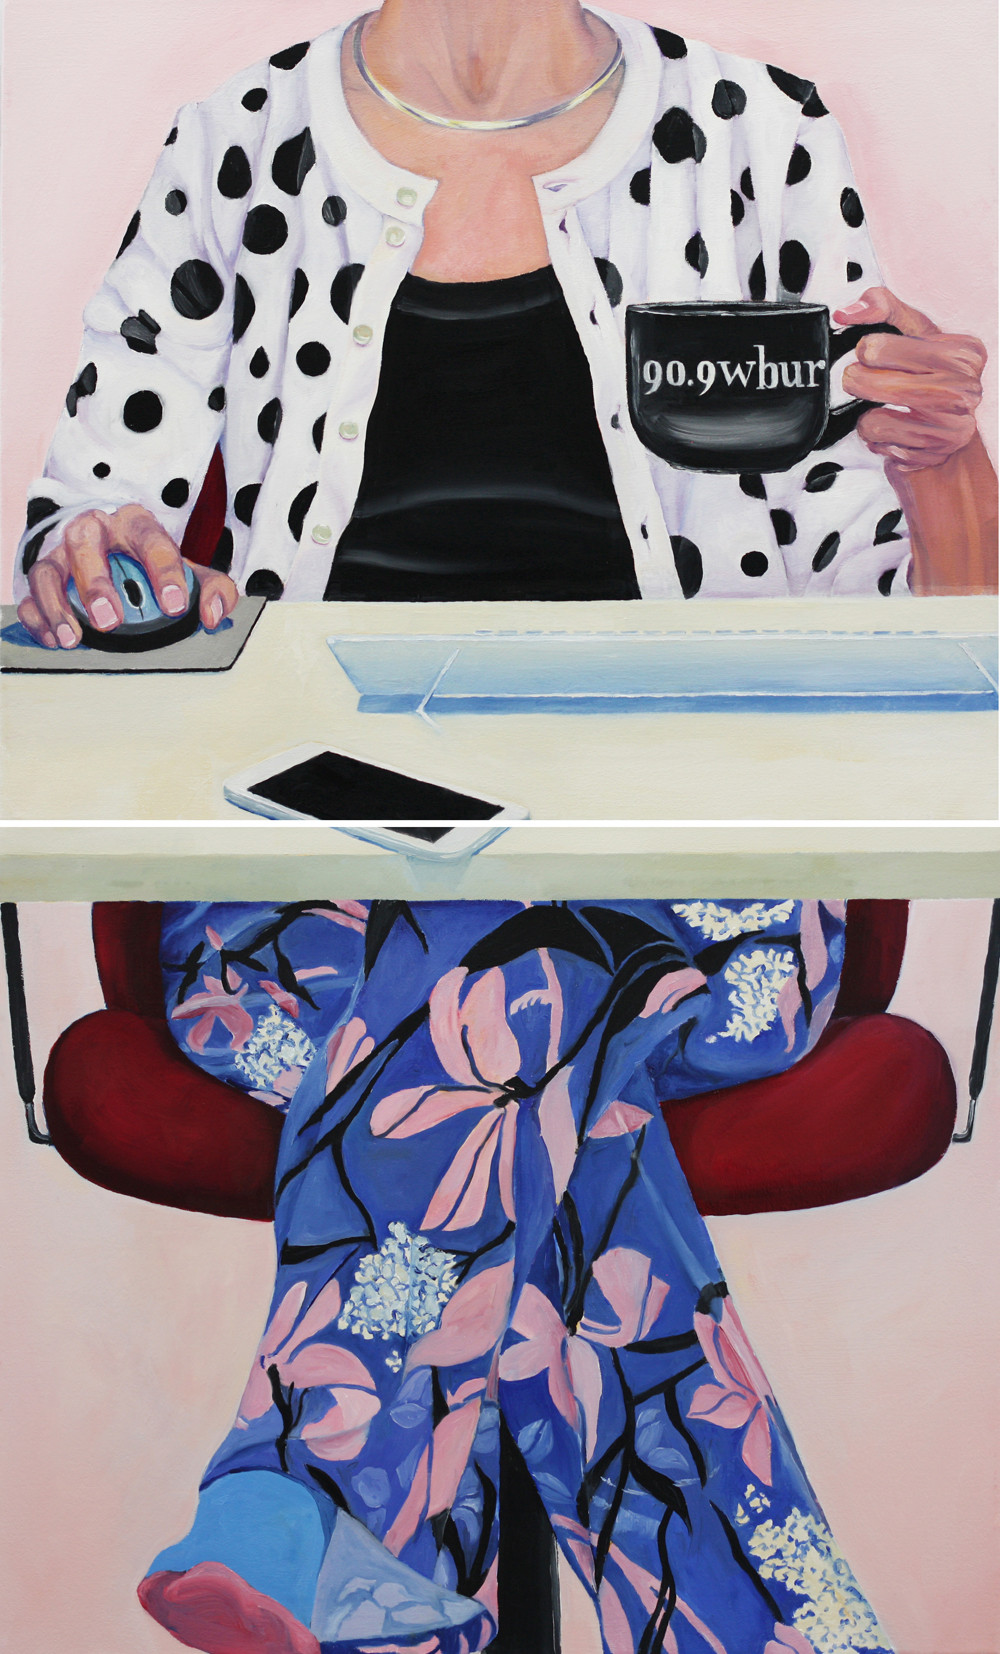 Diptych: Working From Home